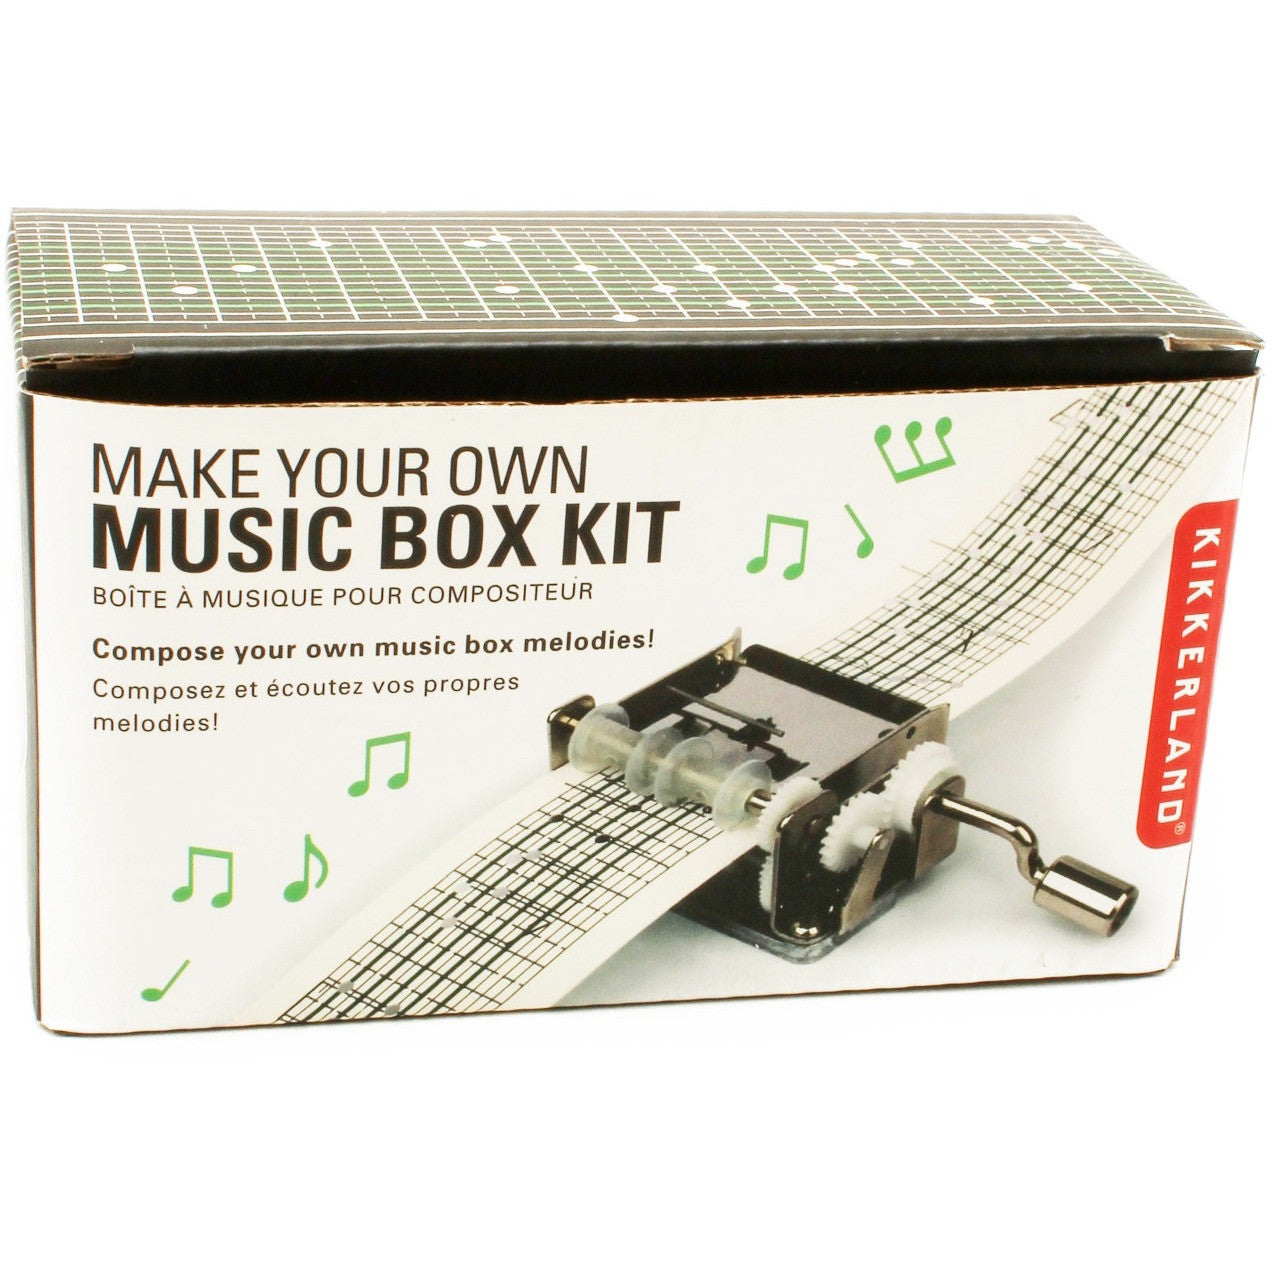 kikkerland make your own music box kit  music boxes - kikkerland make your own music box kit  music boxes  anglo dutch poolsand toys